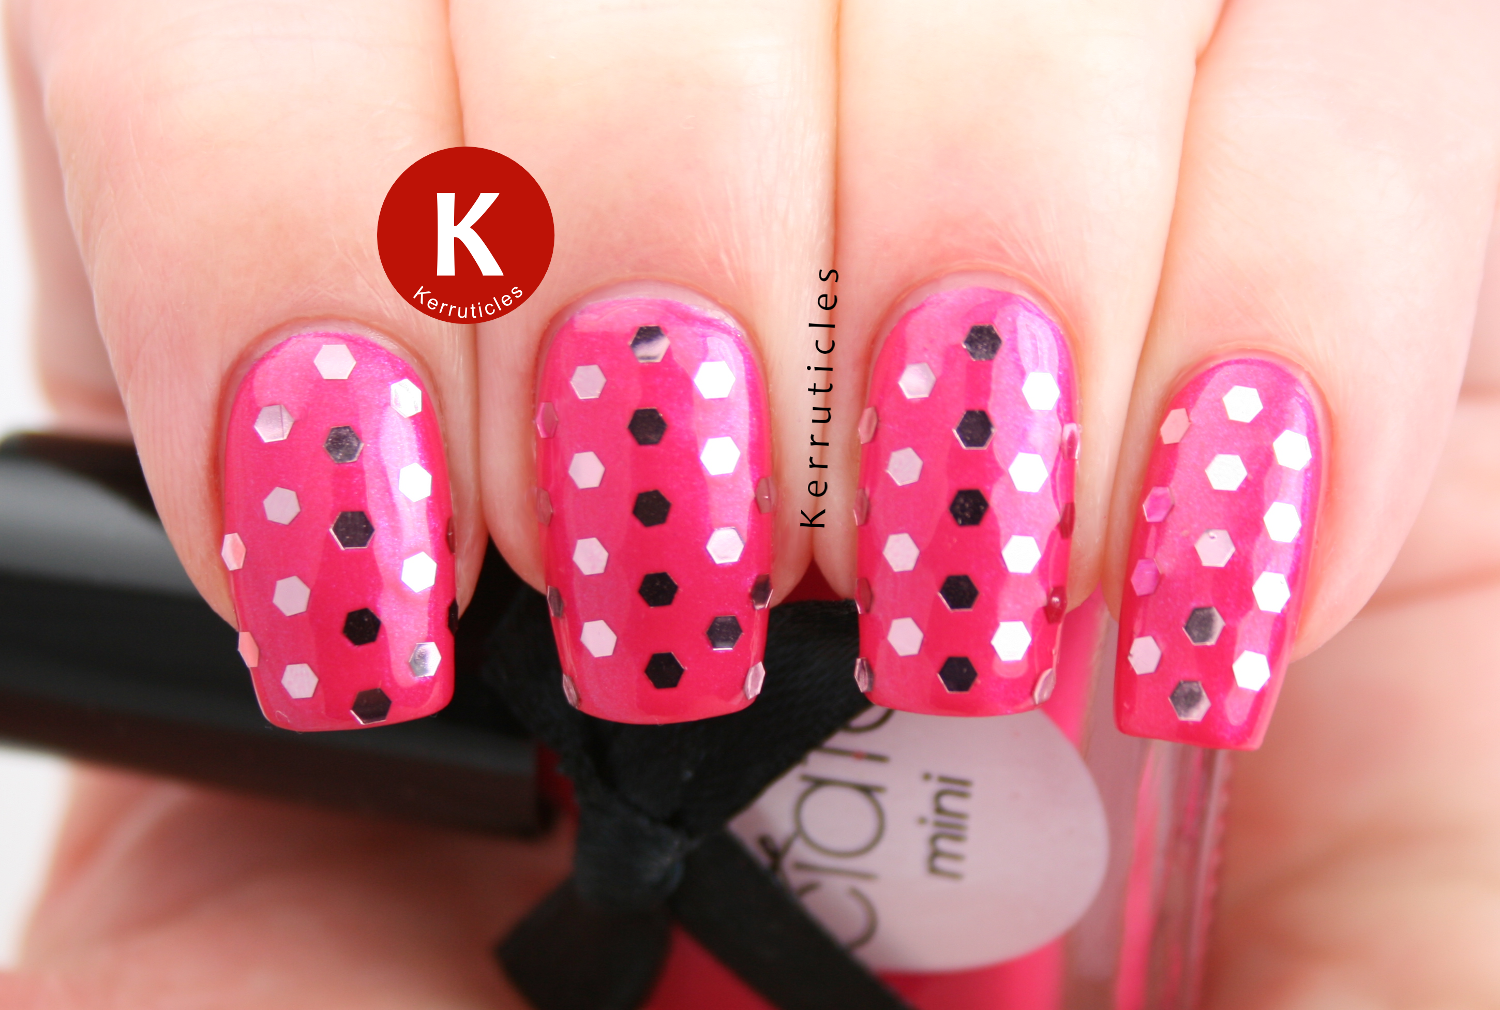 Ciate Cupcake Queen pink glequins polka dots